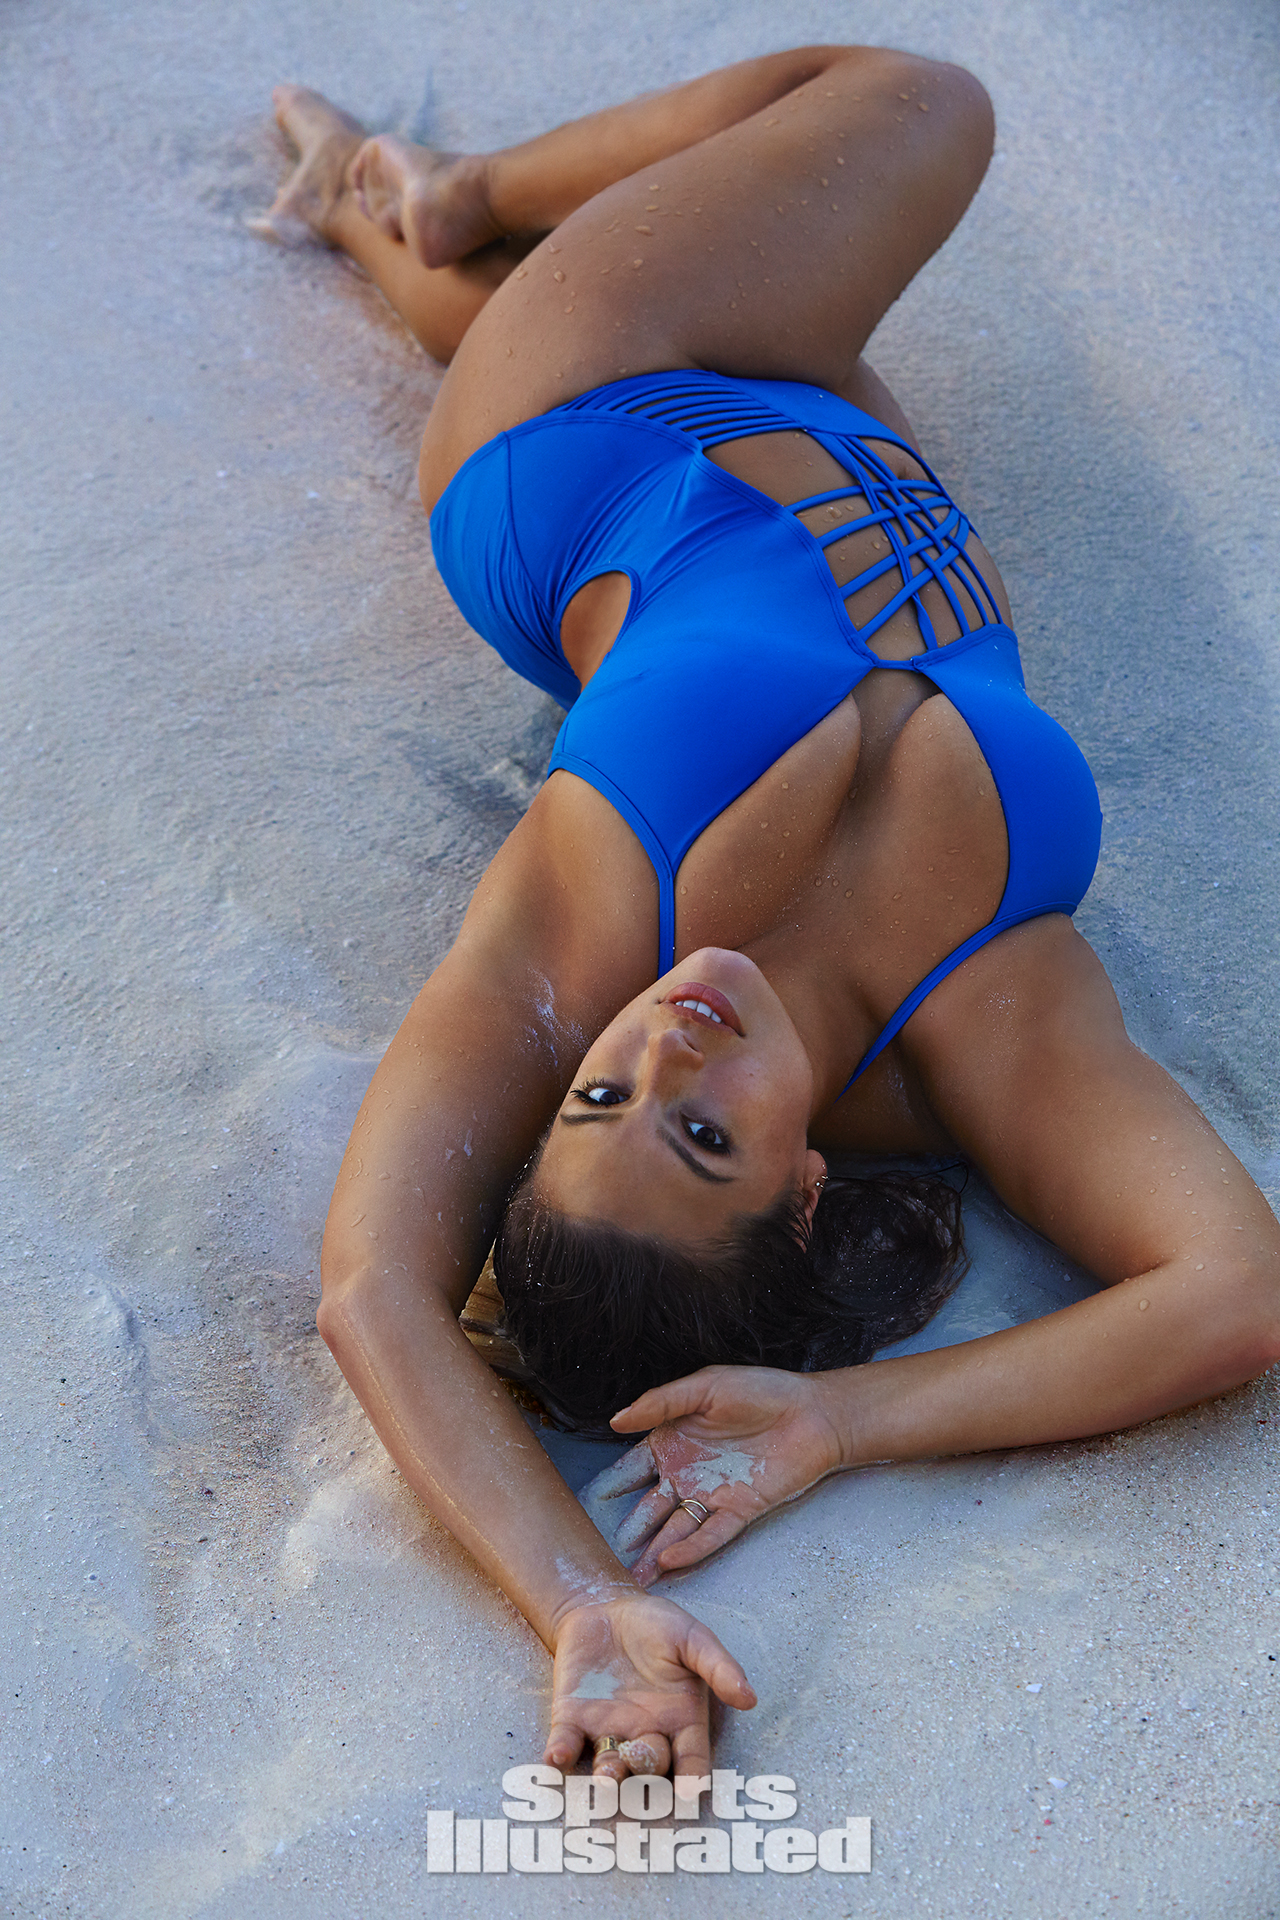 Ashley Graham was photographed by James Macari in Turks & Caicos. Swimsuit by Kenneth Cole Swimwear.